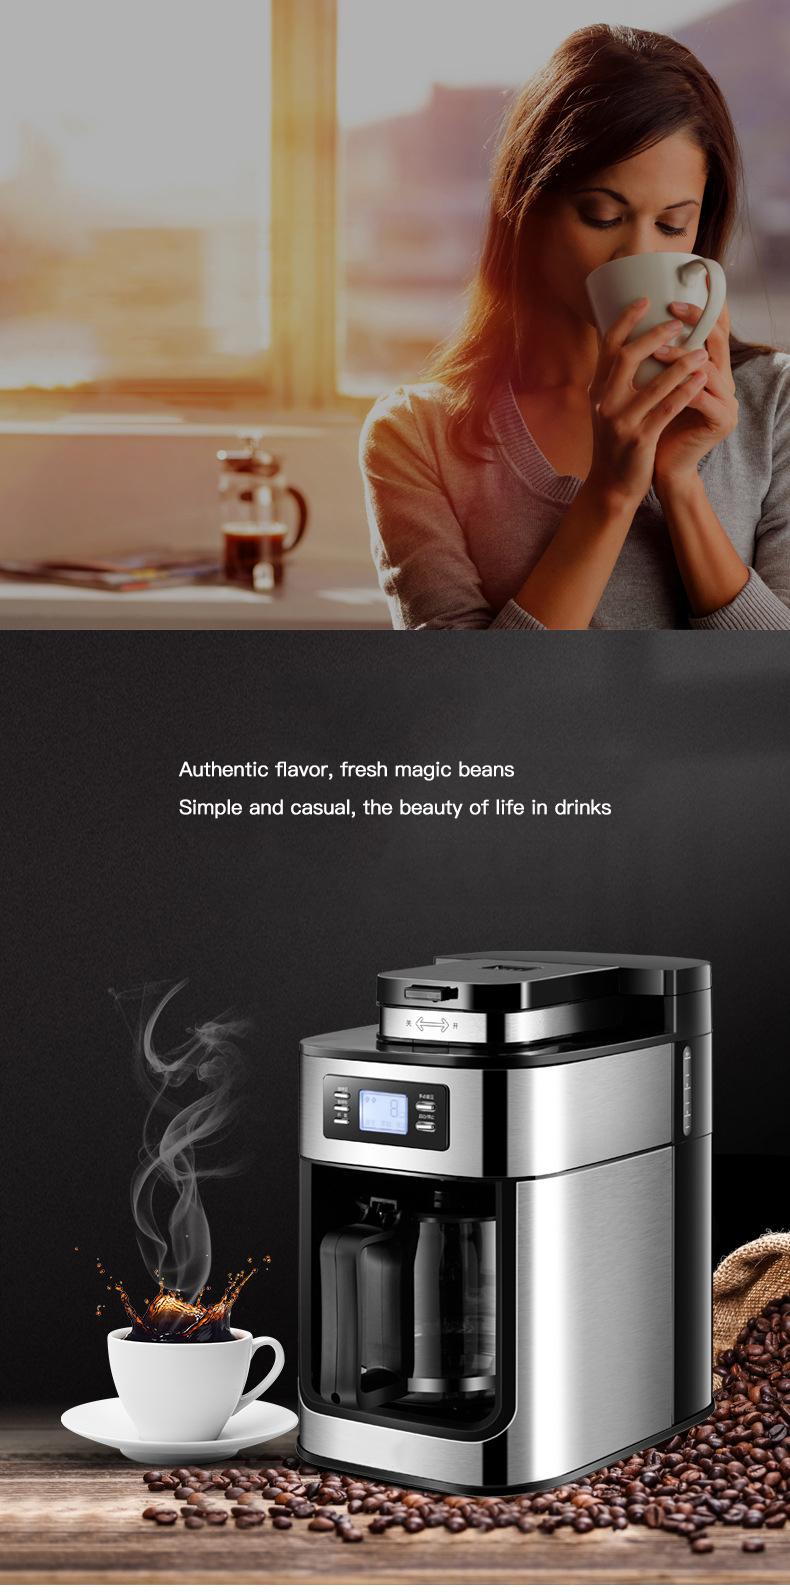 Automatic grinder, freshly cooked, drip-style, American-style coffee pot, tea machine